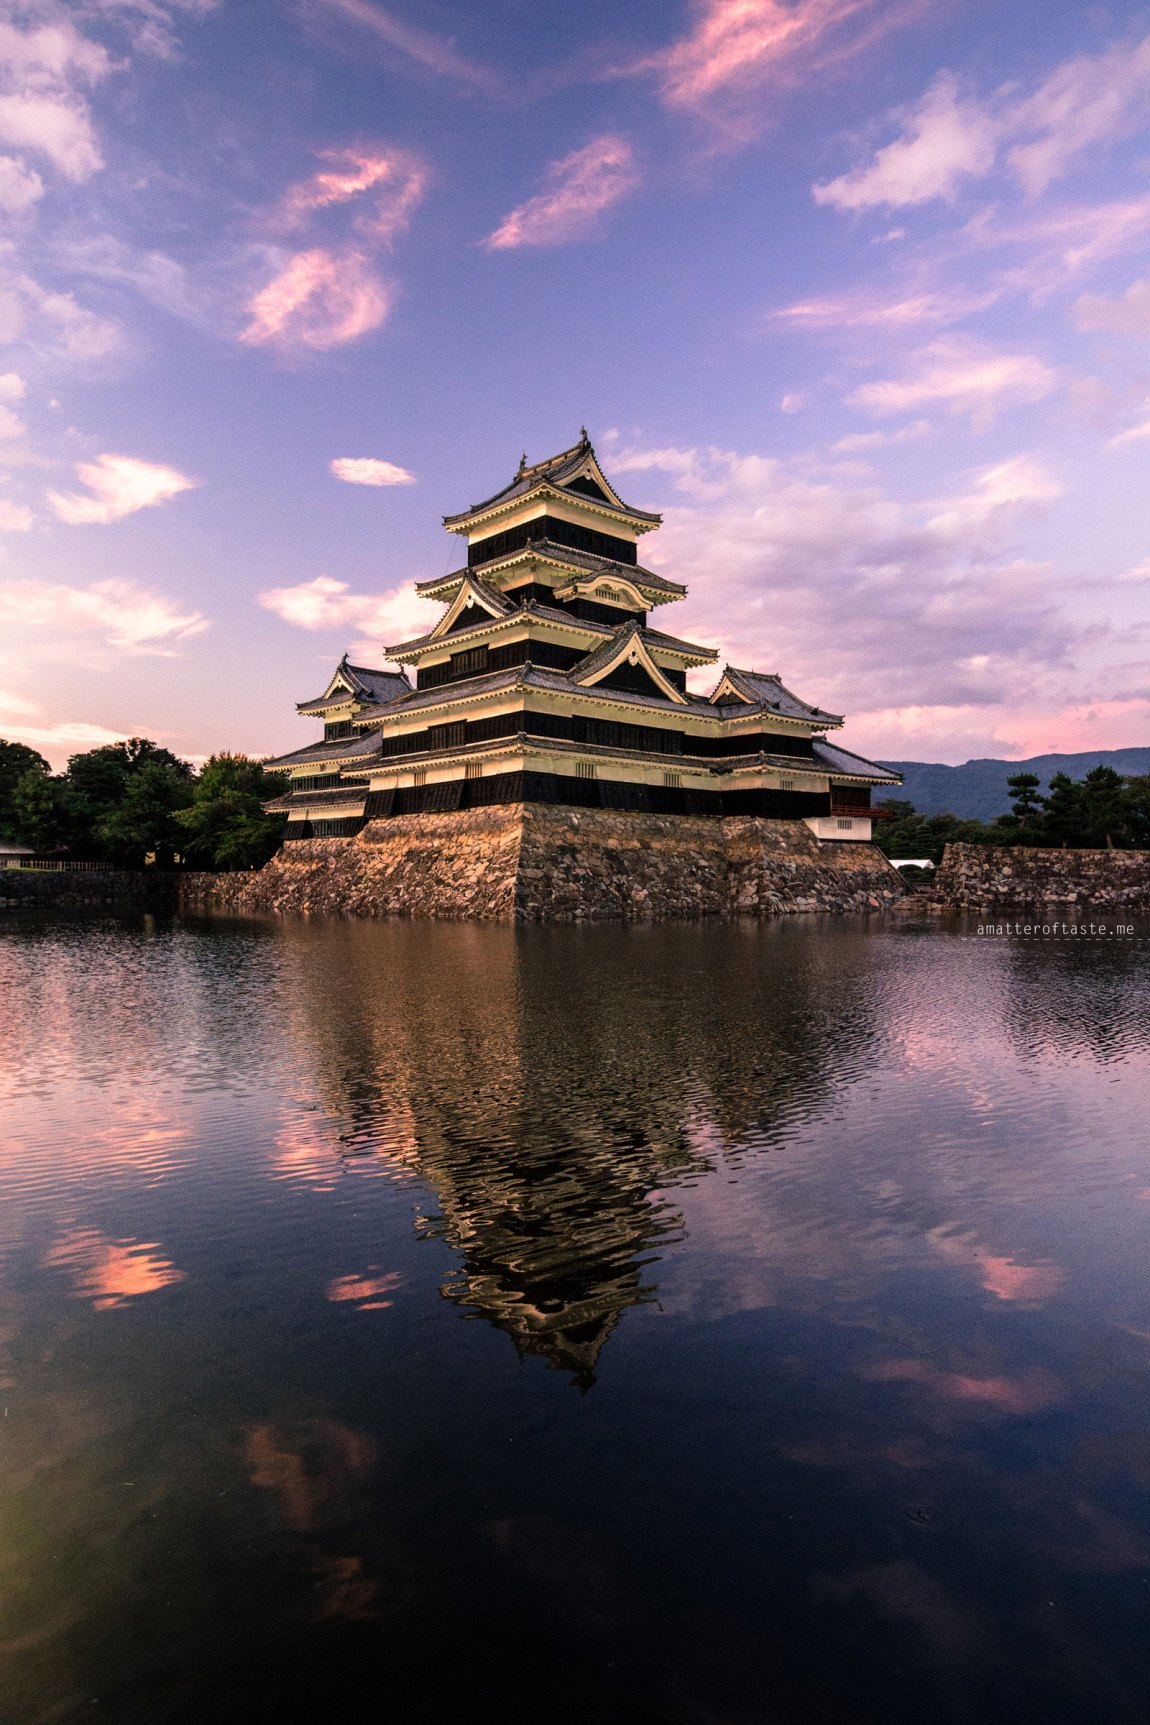 Matsumoto Castle by a matter of taste